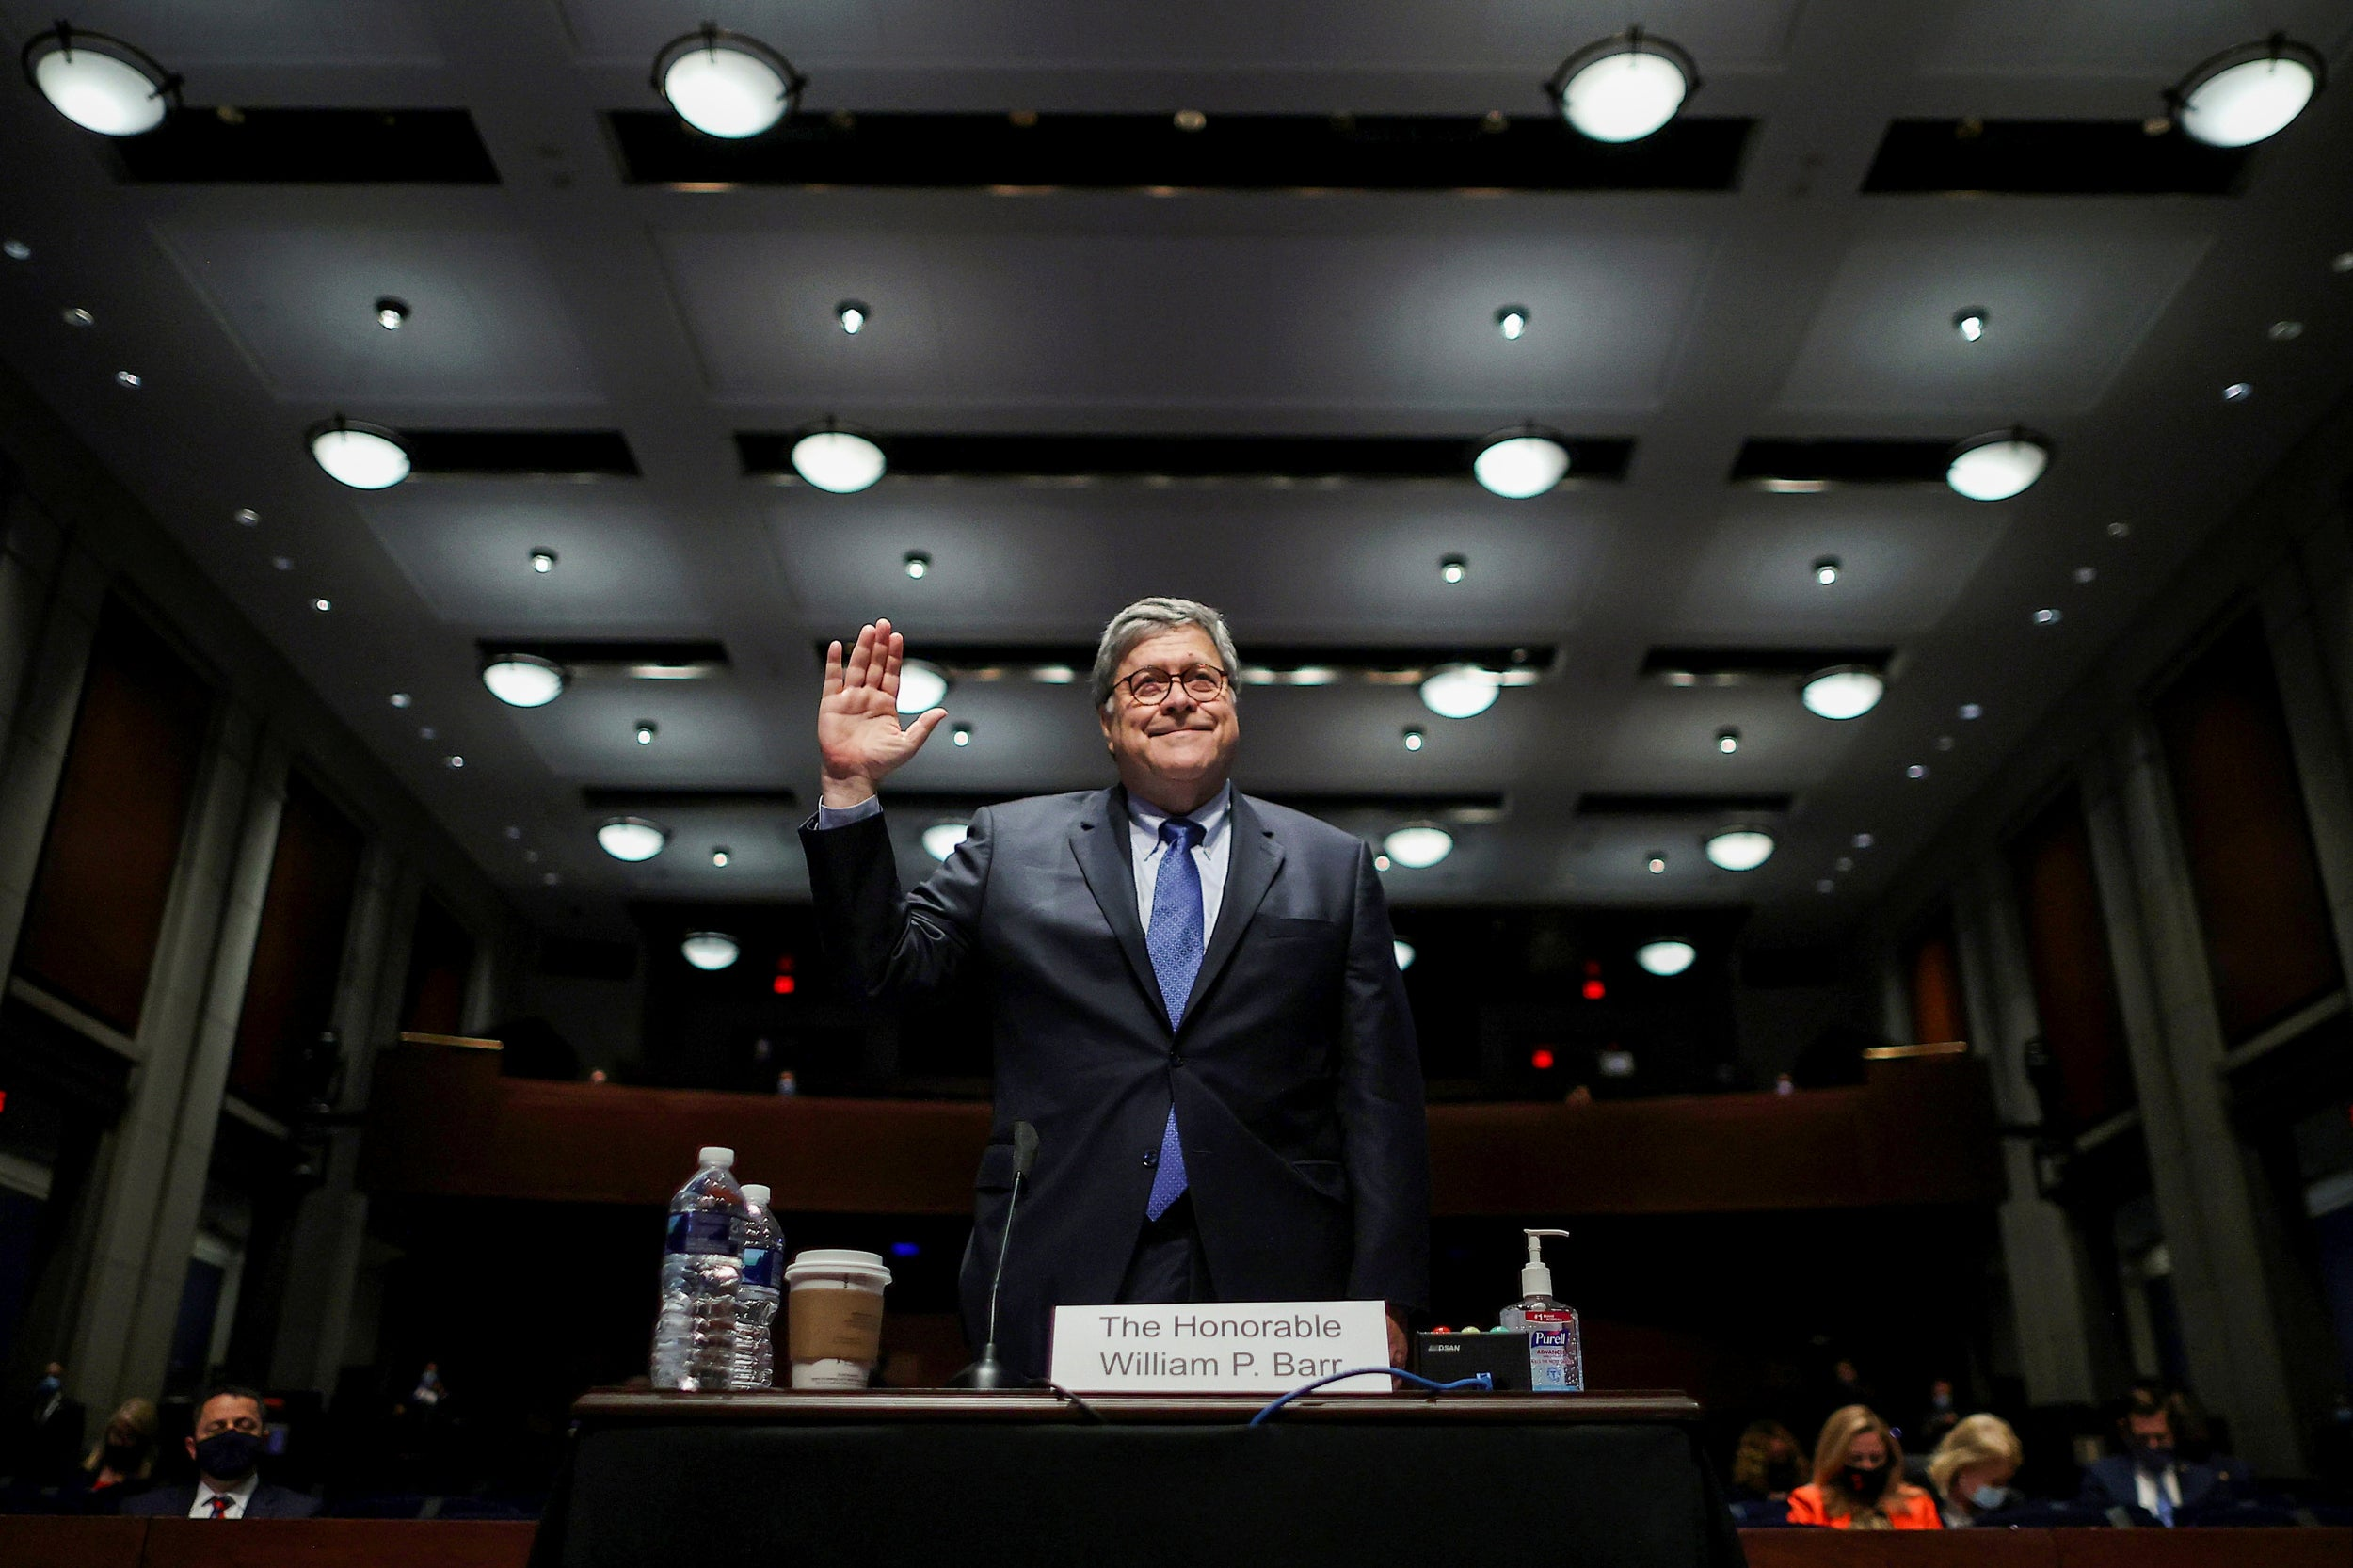 The terrifying psychology behind Trump and Bill Barr's relationship